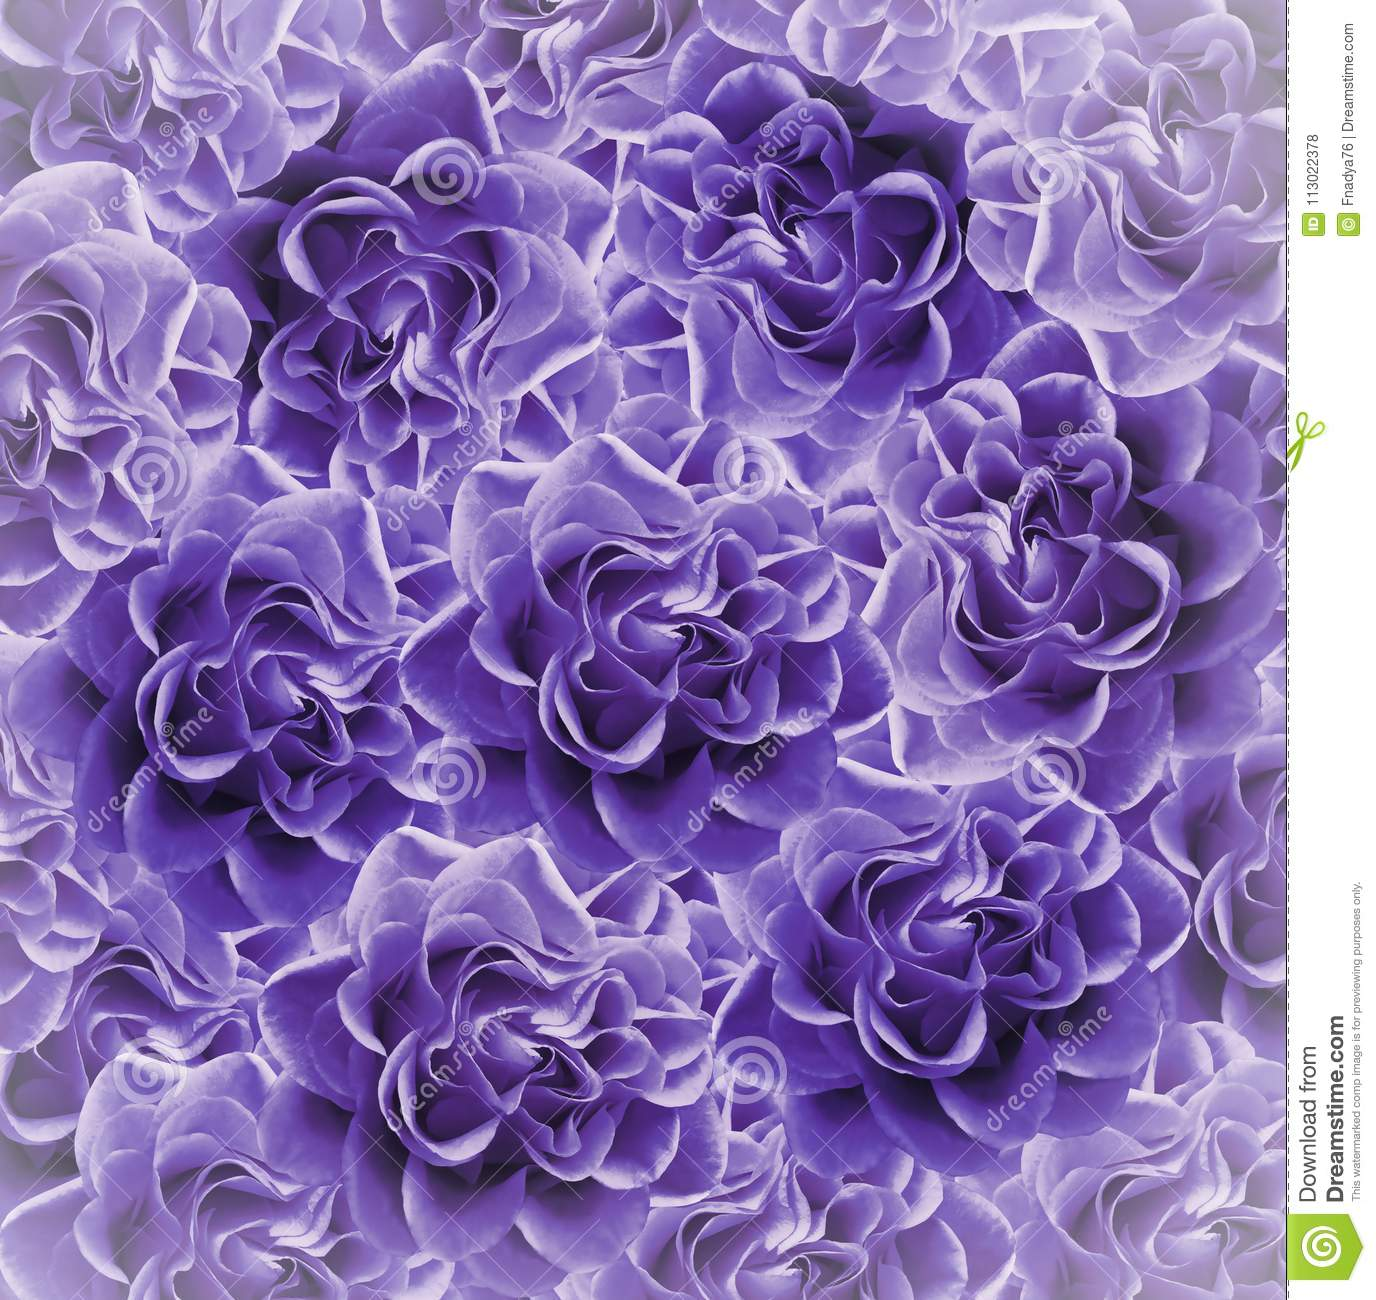 Vintage floral purple beautiful background. Flower composition. Bouquet of flowers from violet roses. Close-up.